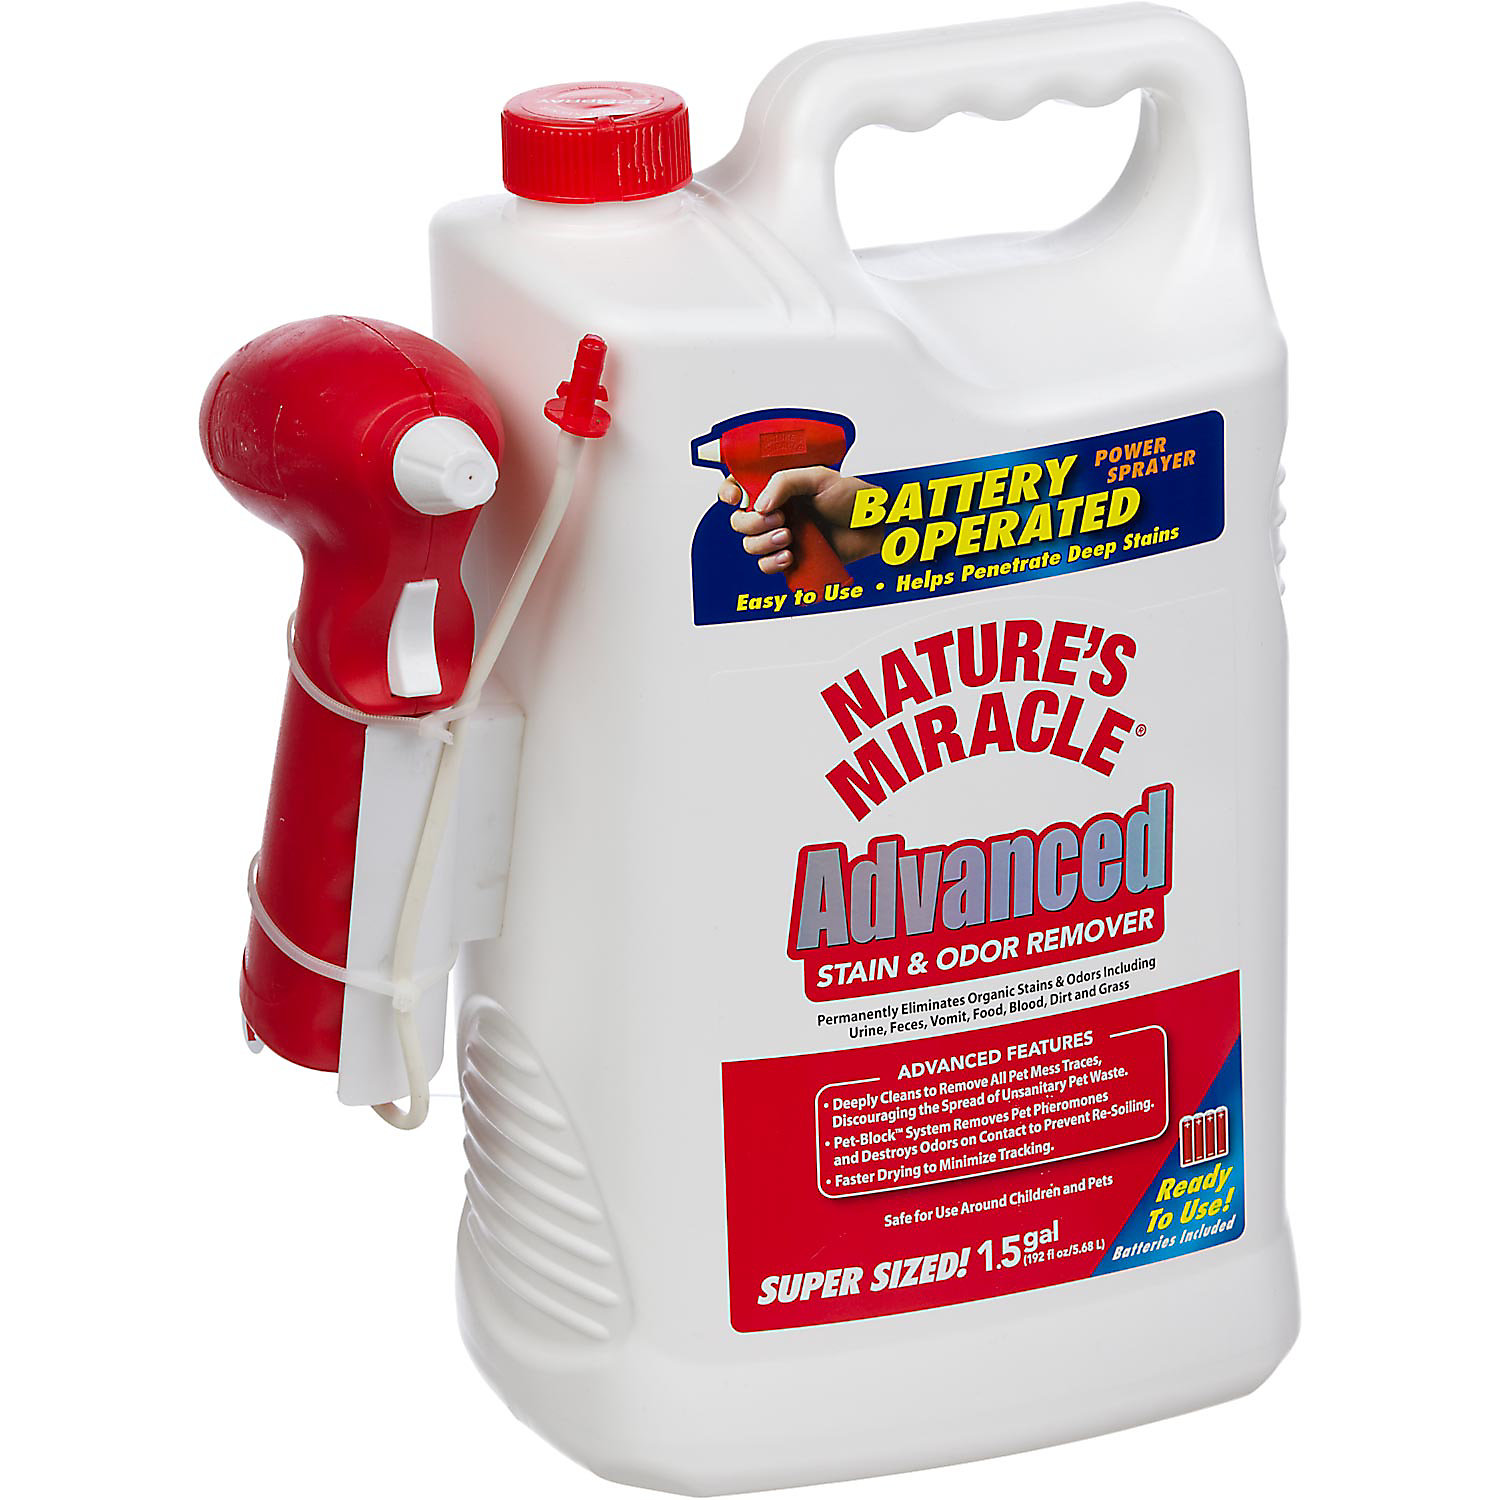 Nature S Miracle Advanced Stain Odor Remover Battery Powered Sprayer